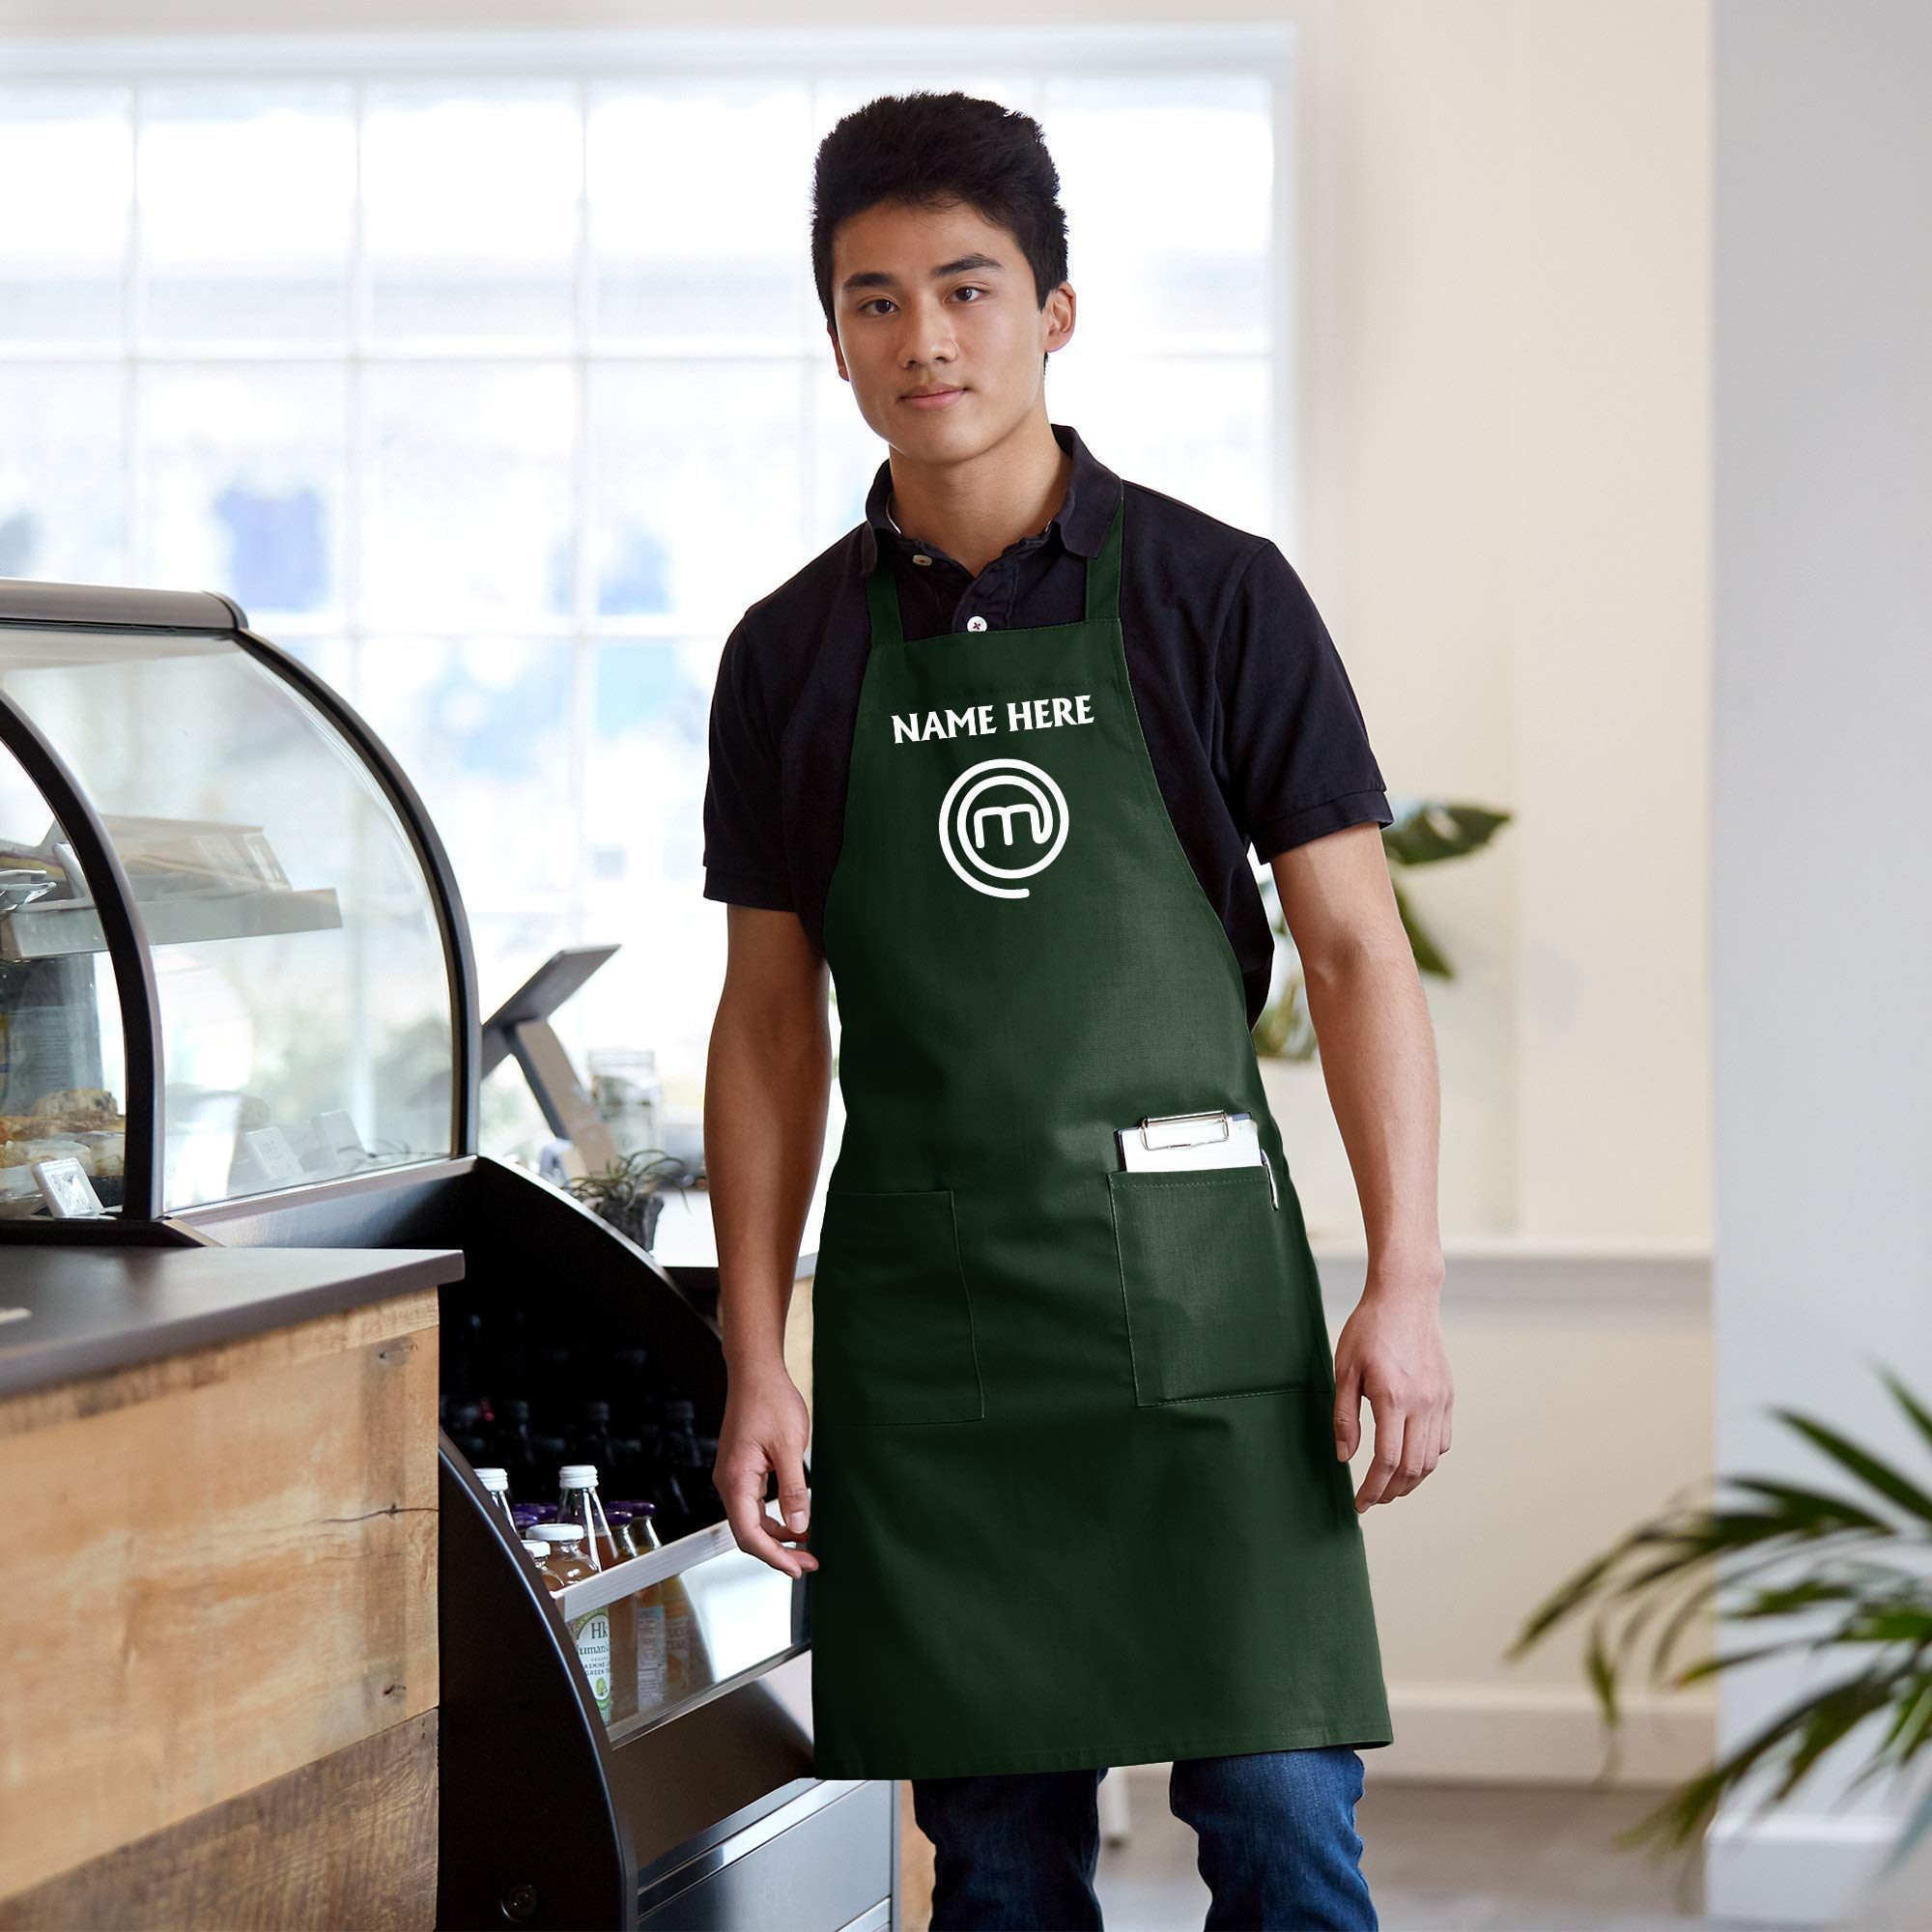 Custom name Cook Master Chef Apron Embroidered Adults Unisex by Custom T-shirts Printing and Embroidery - Place4Print